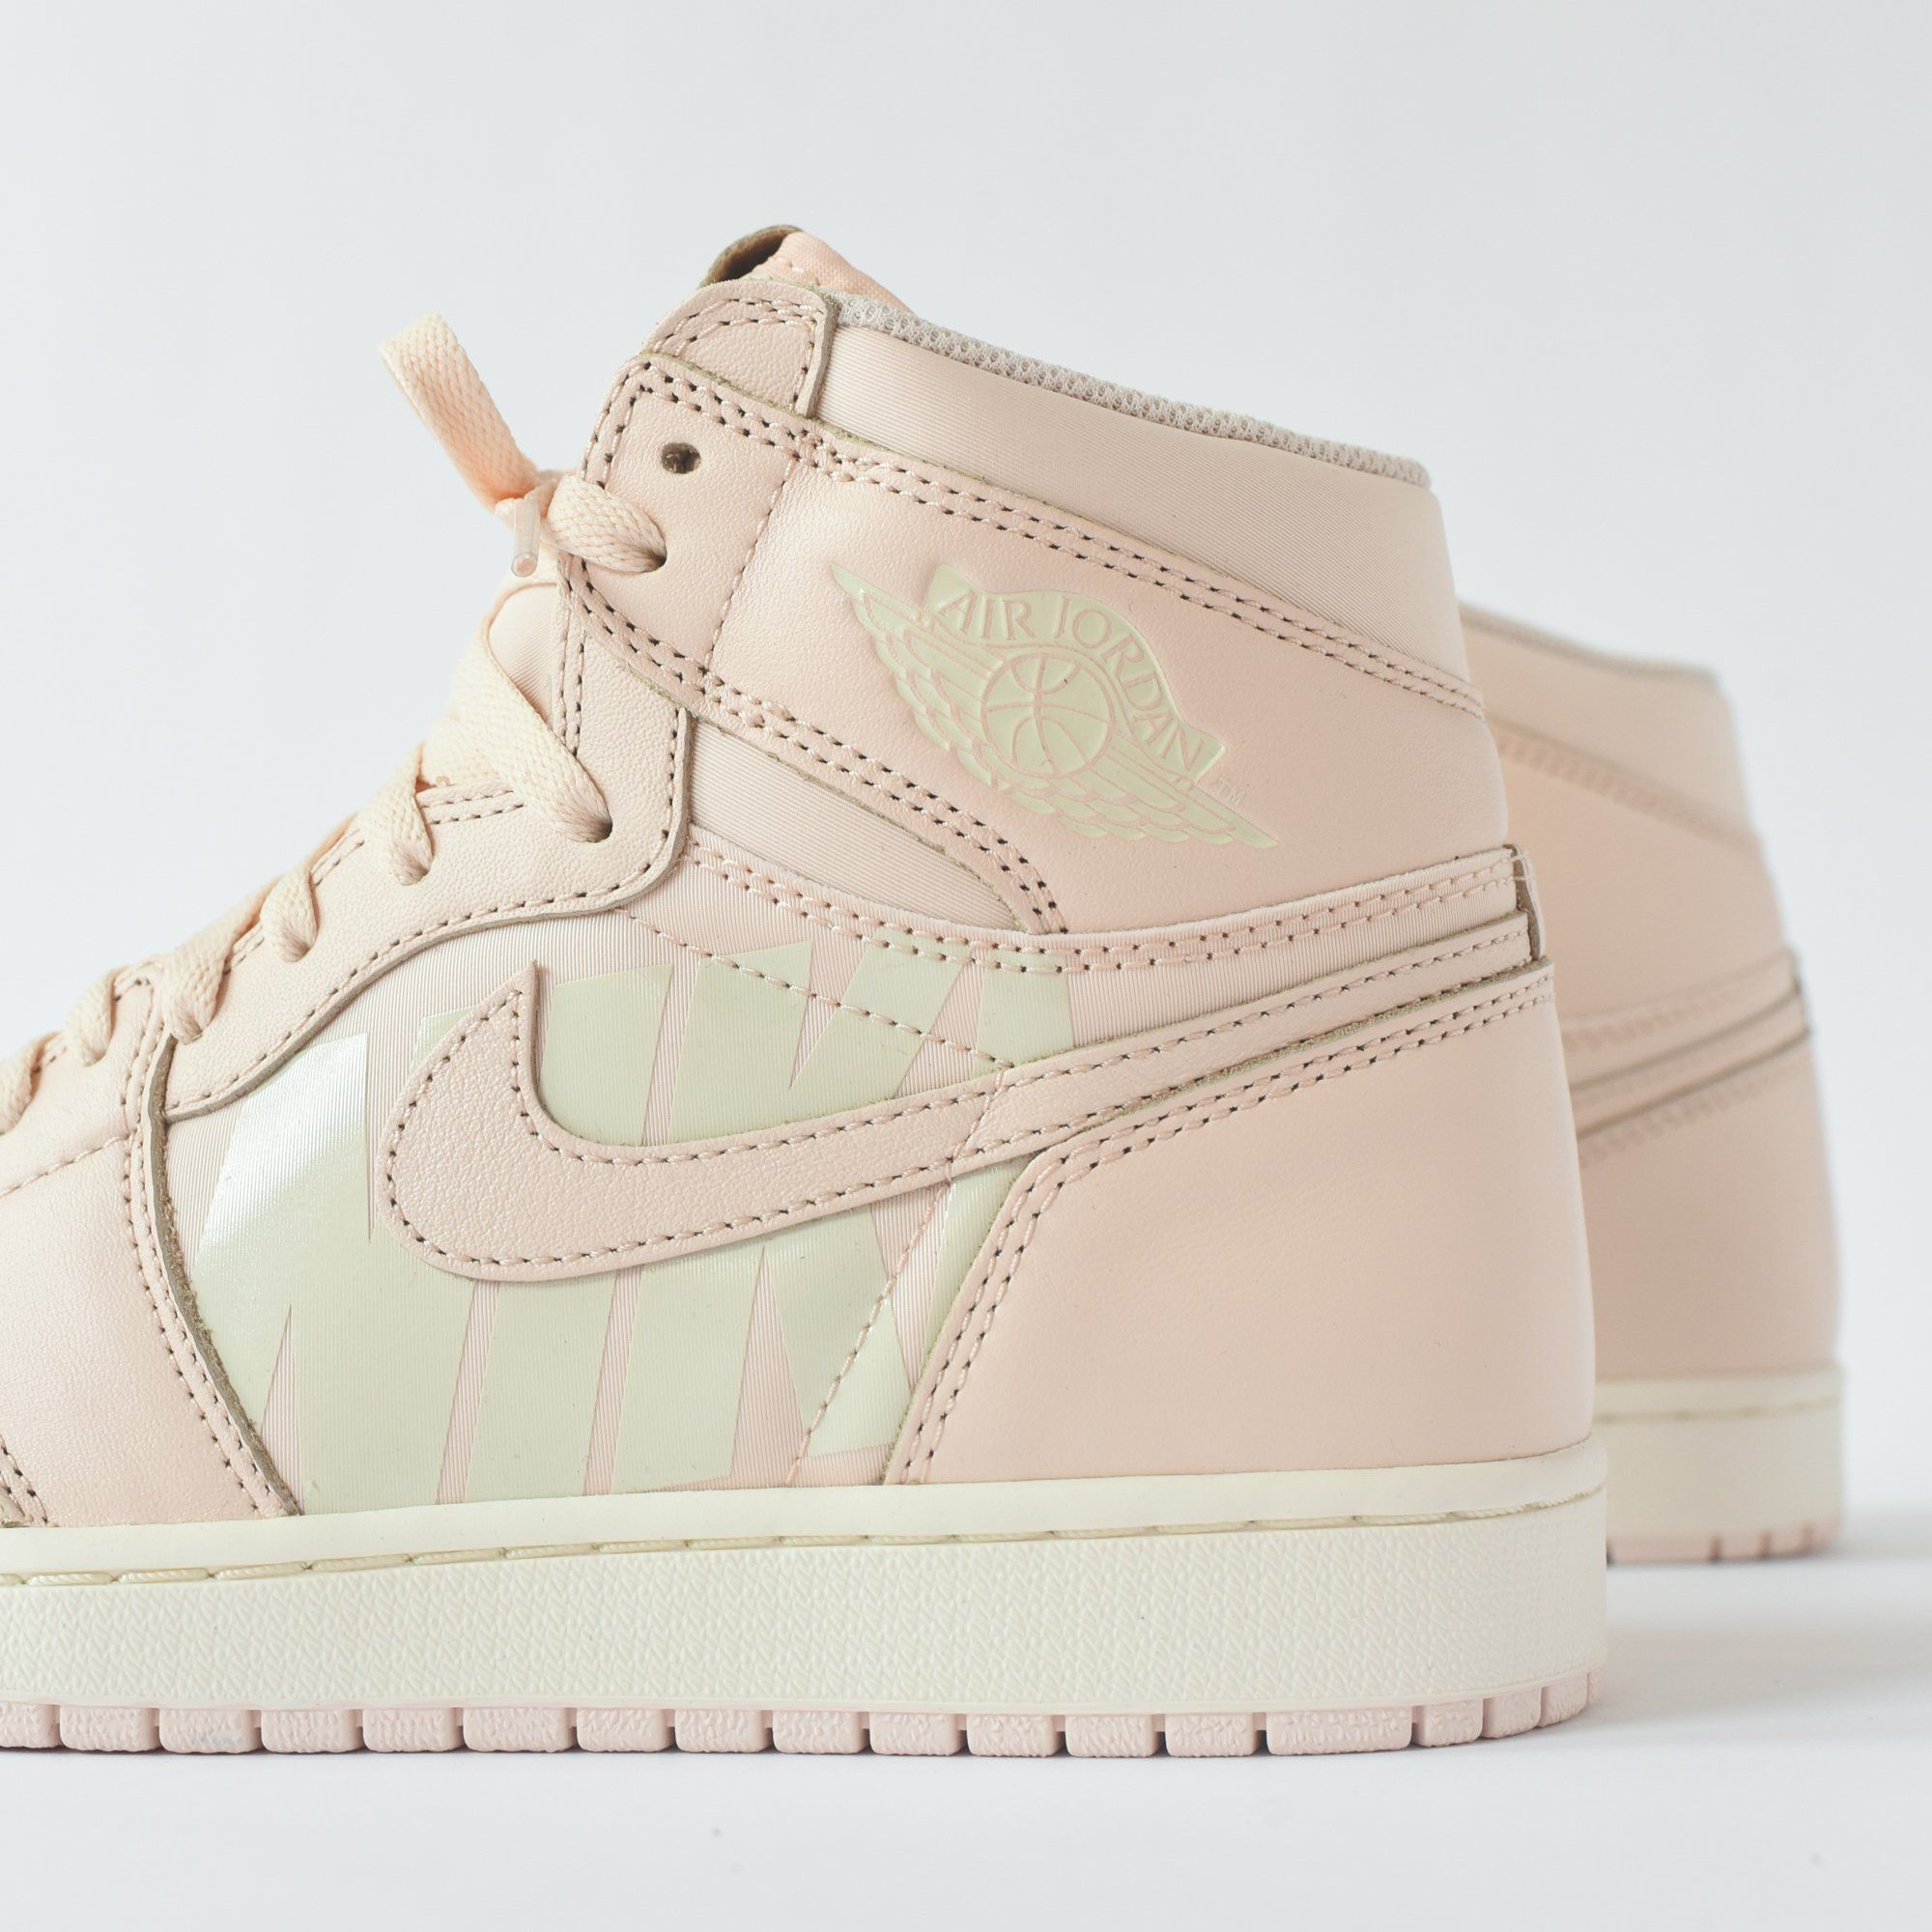 45a6aecc7fd158 Nike Air Jordan 1 - Guava Ice   Sail - 3 in 2019